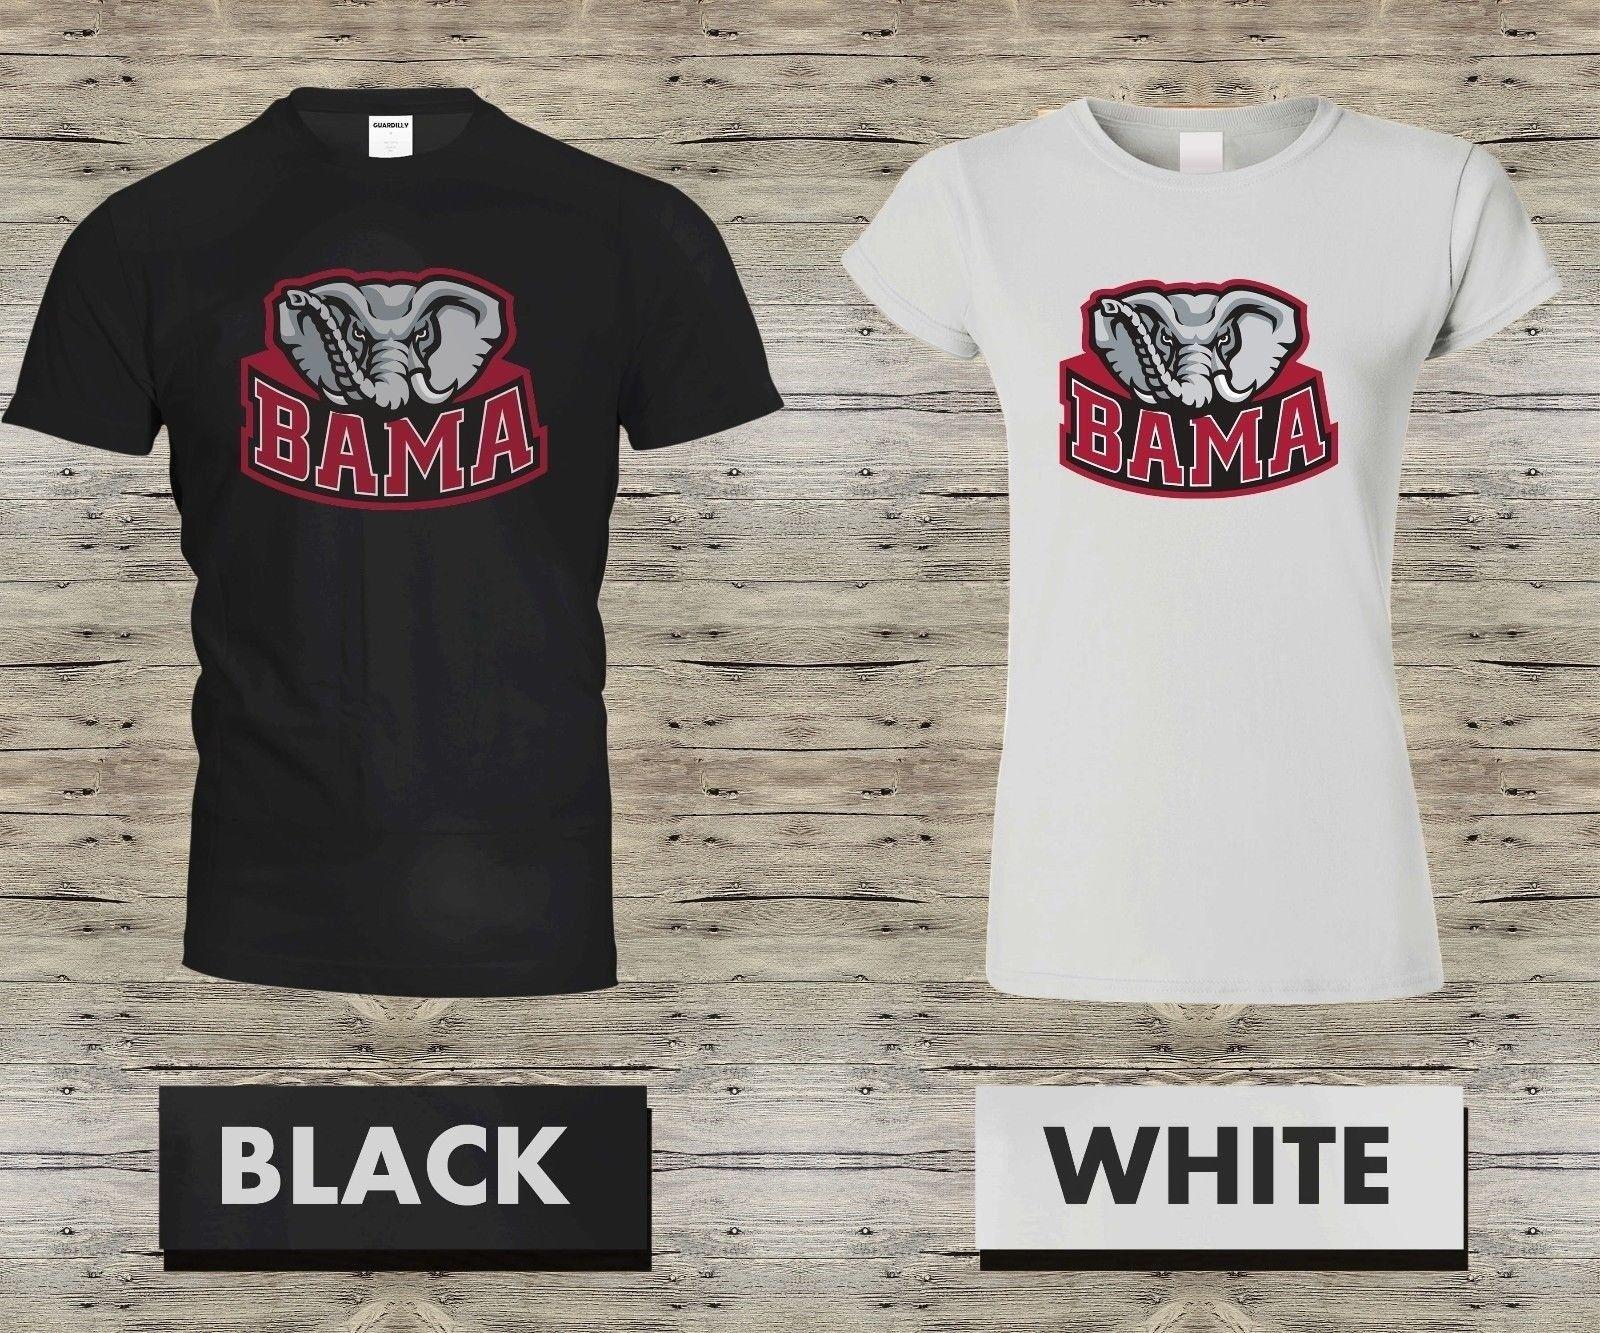 11ba8d14 New Alabama Crimson Tide Black Midnight Mascot T Shirt Mens / Womens Shirt  2 Cartoon T Shirt Men Unisex New Fashion Tshirt Loose Clever Funny T Shirts  Funny ...